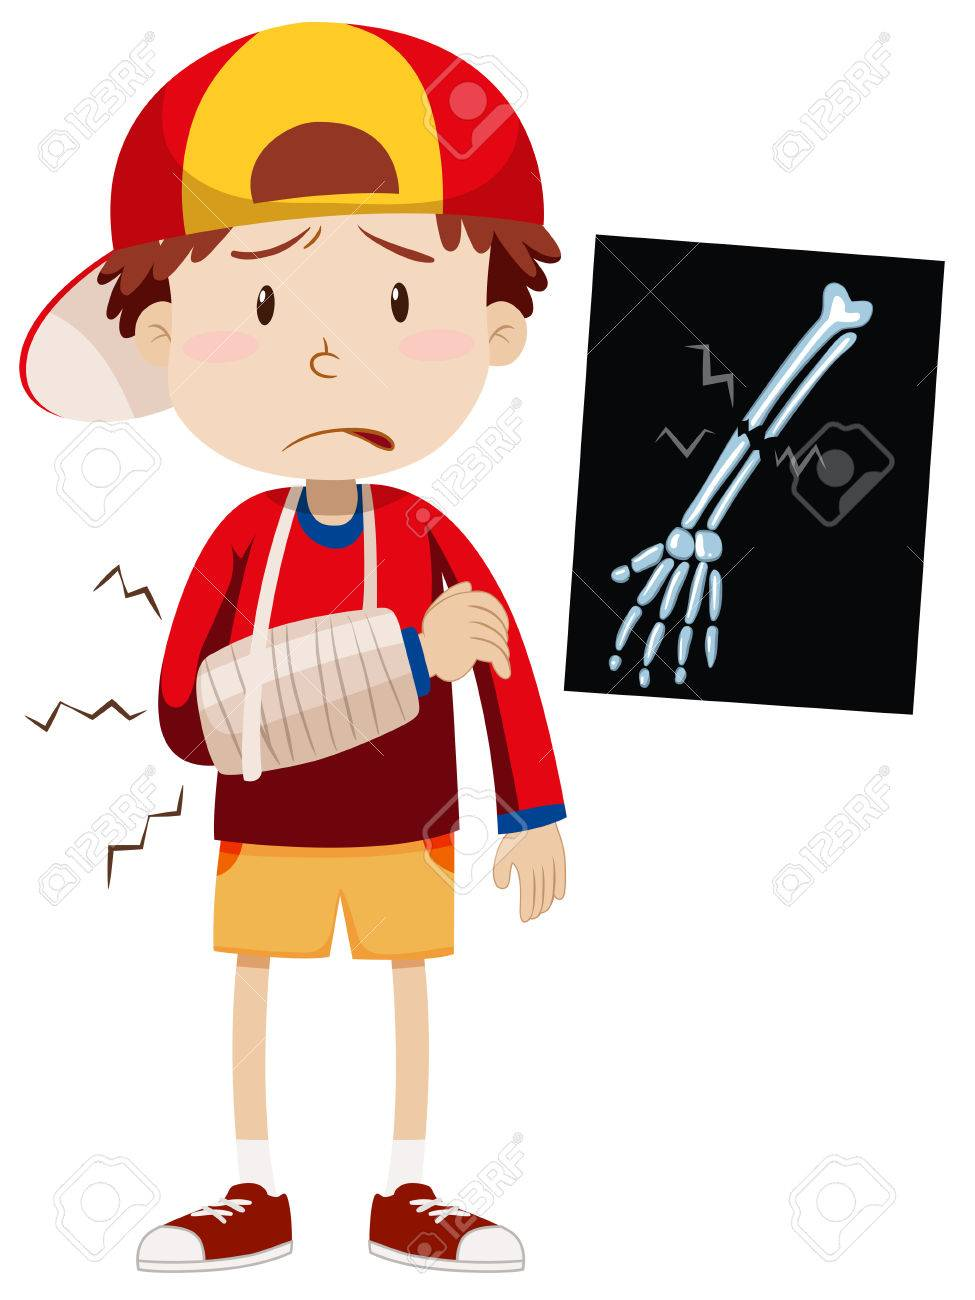 sad boy with broken arm illustration royalty free cliparts vectors rh 123rf com broken arm clipart girl with broken arm clipart